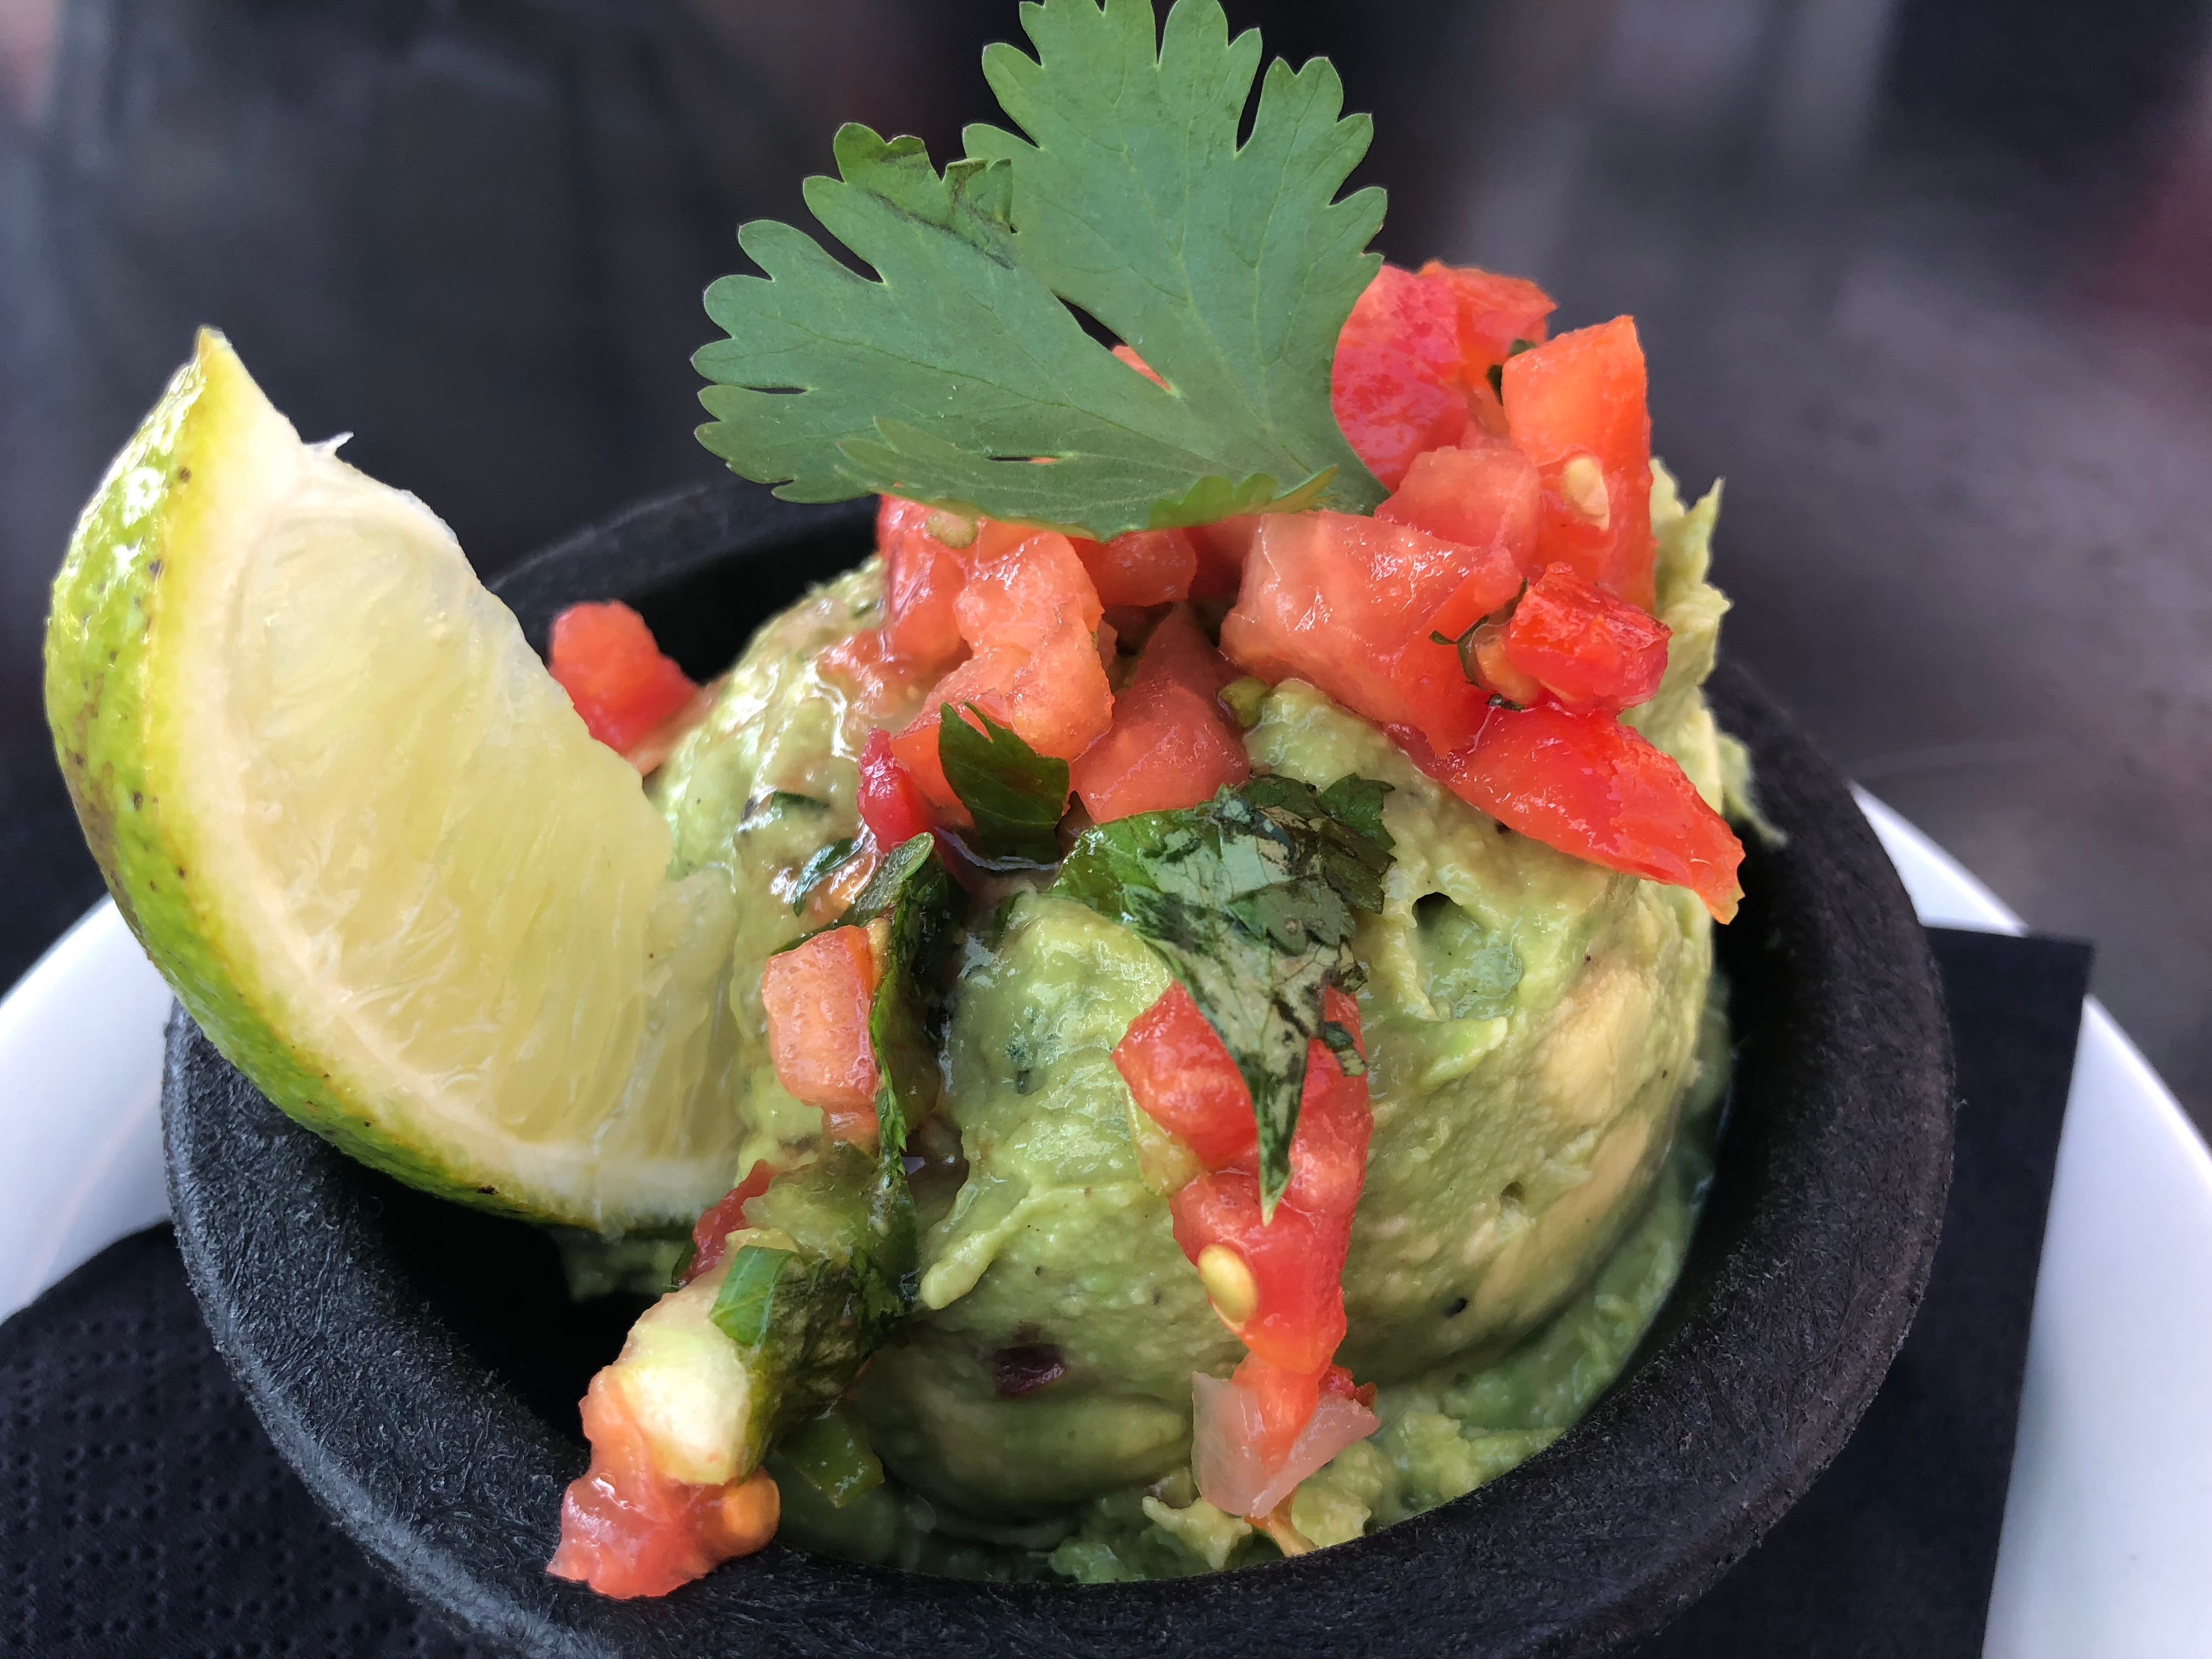 Sopapillas' homemade guacamole was a fresh addition to the meal. The restaurant offers a homemade version as well as a tableside option.